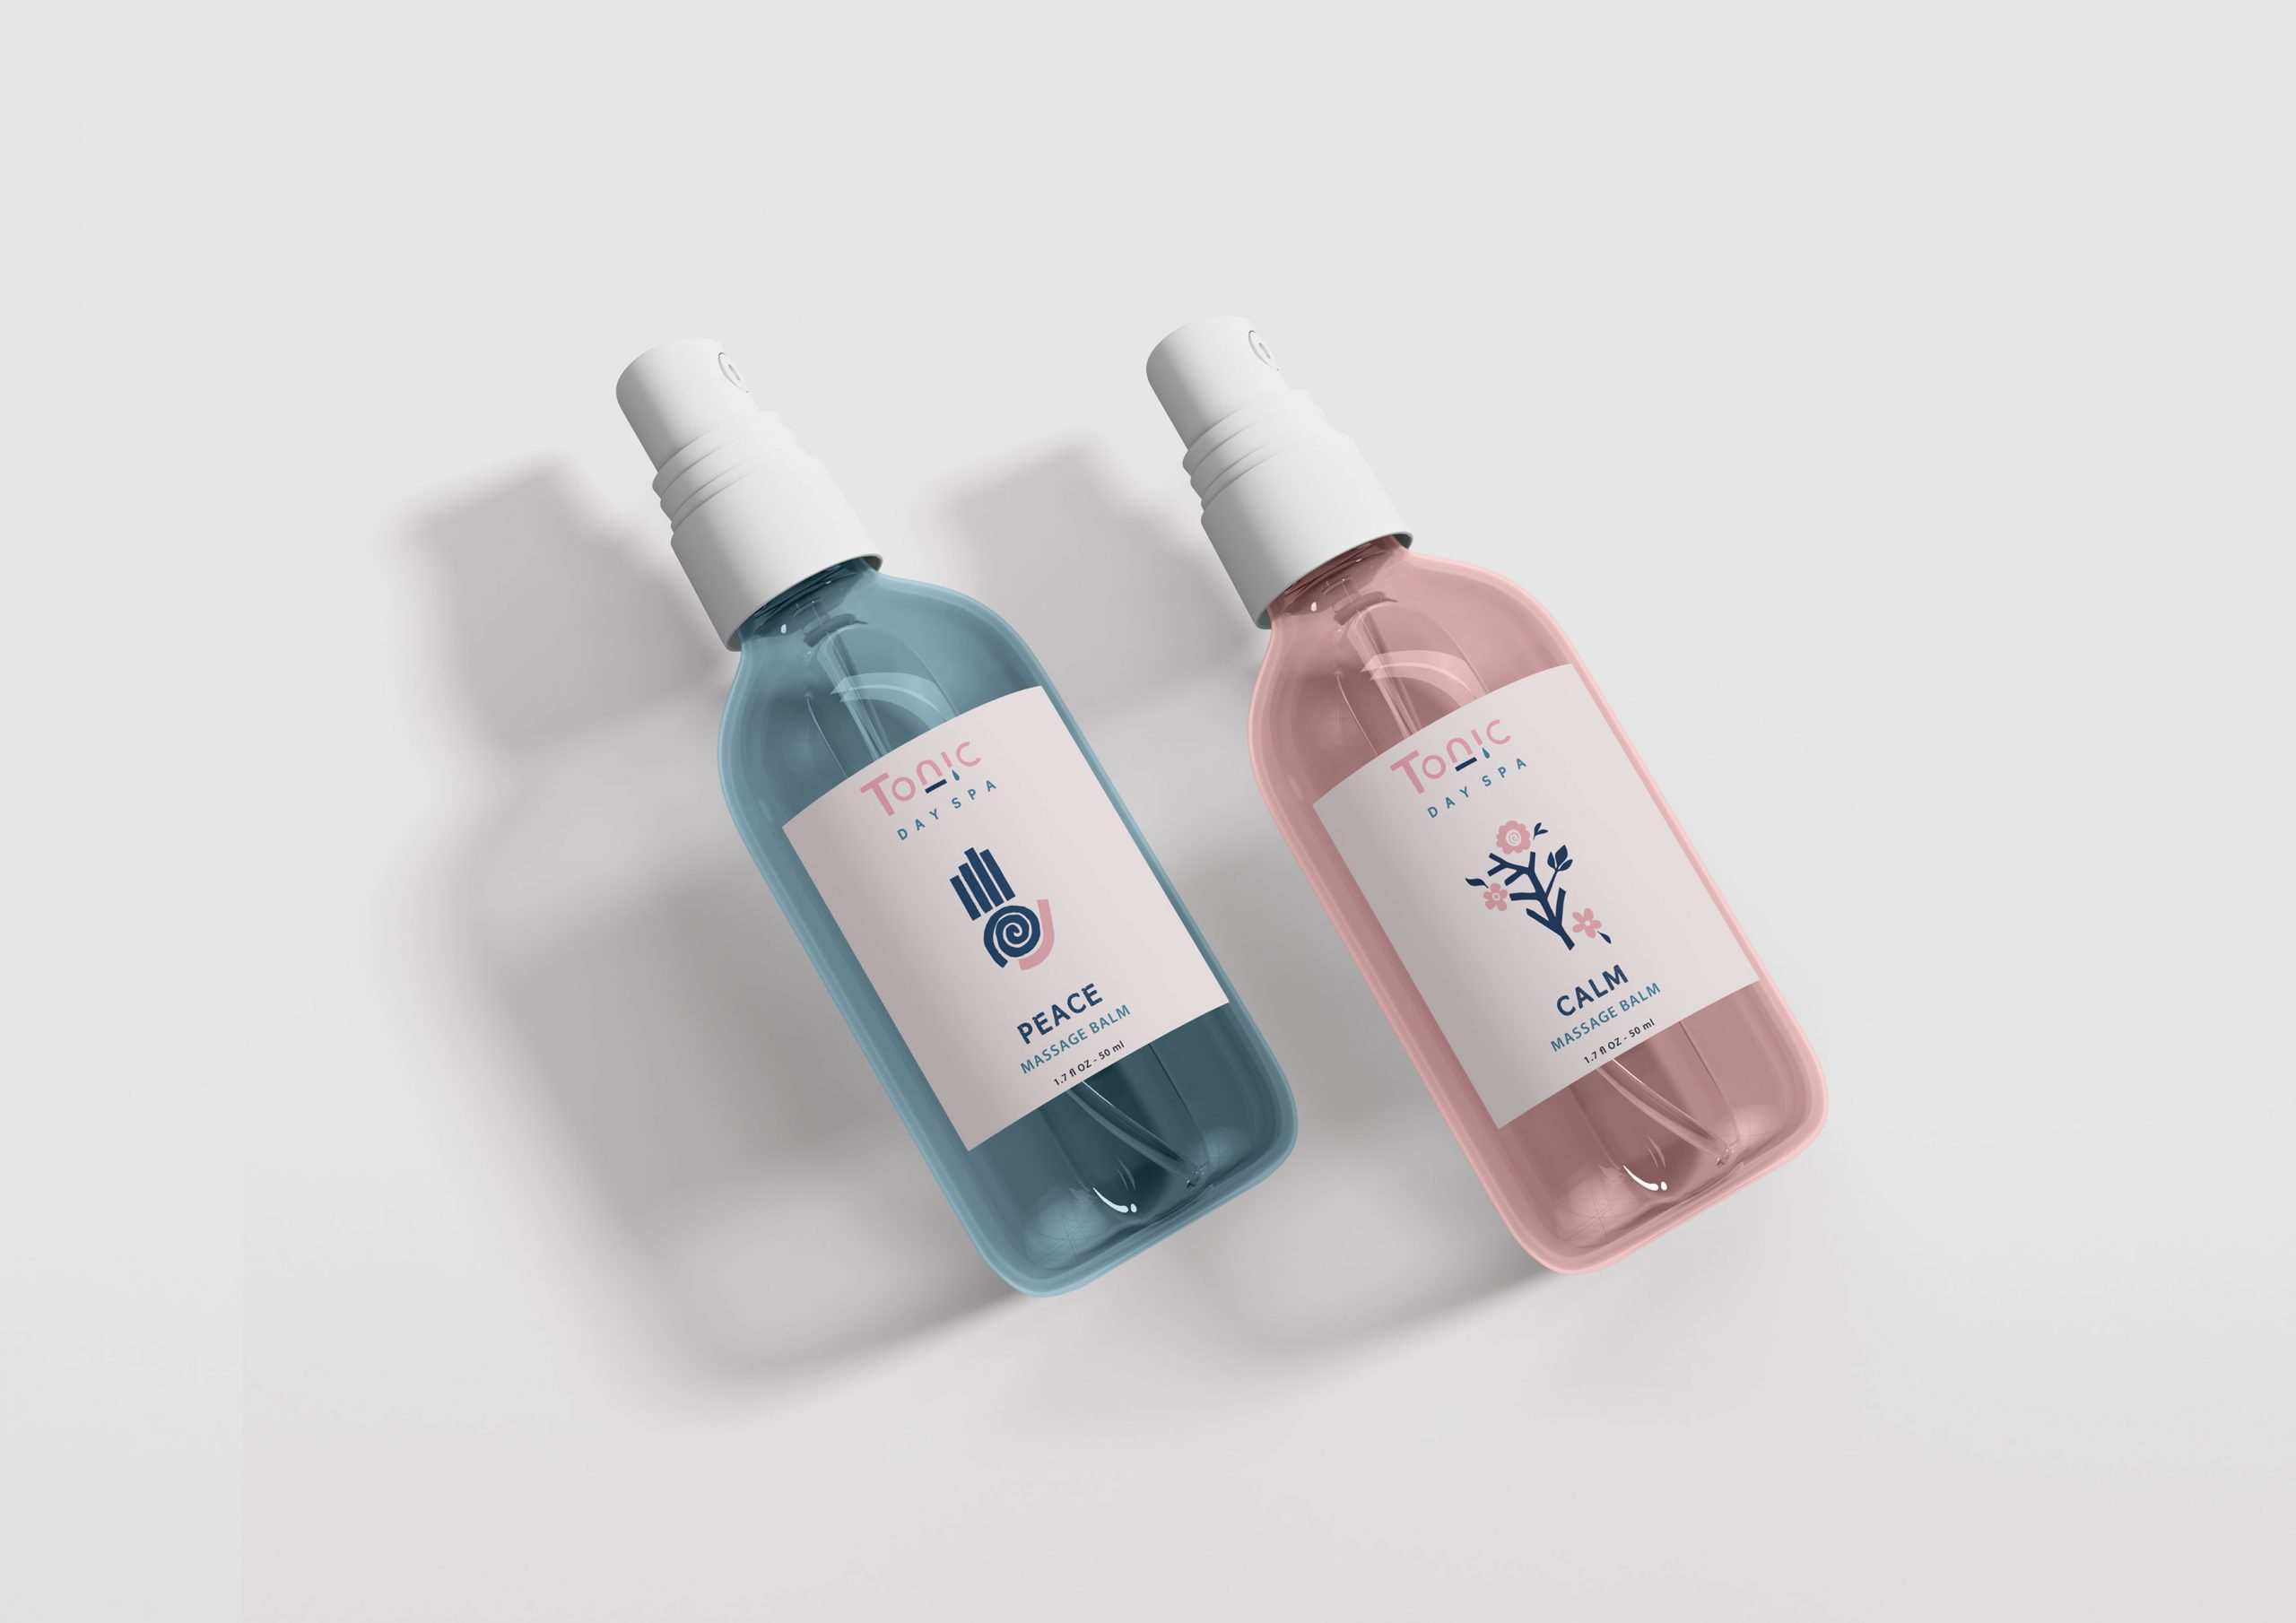 Tonic Day Spa packaging